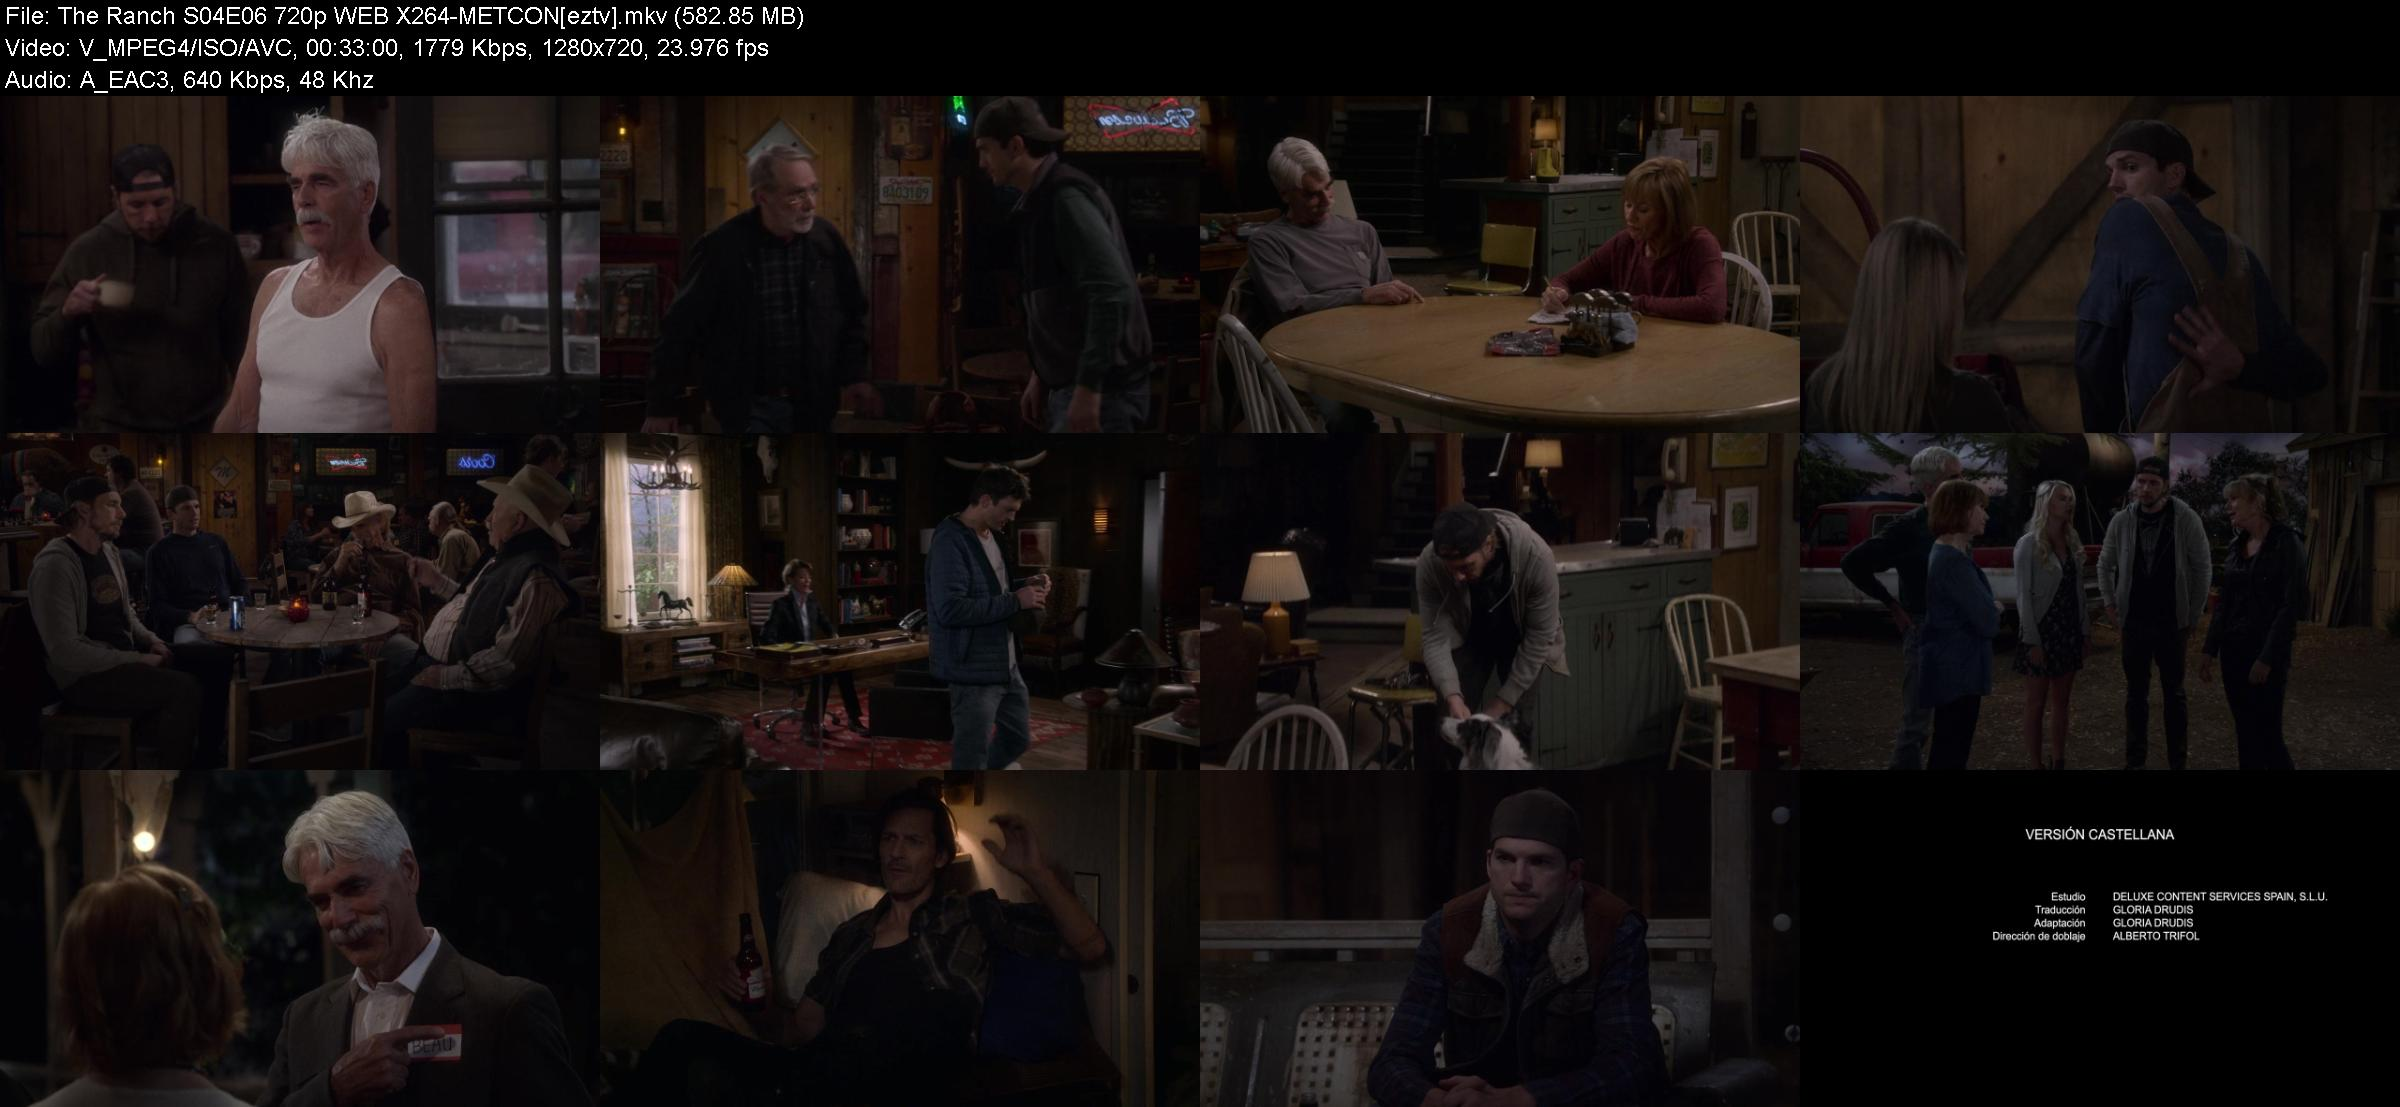 The Ranch S04E06 720p WEB X264-METCON